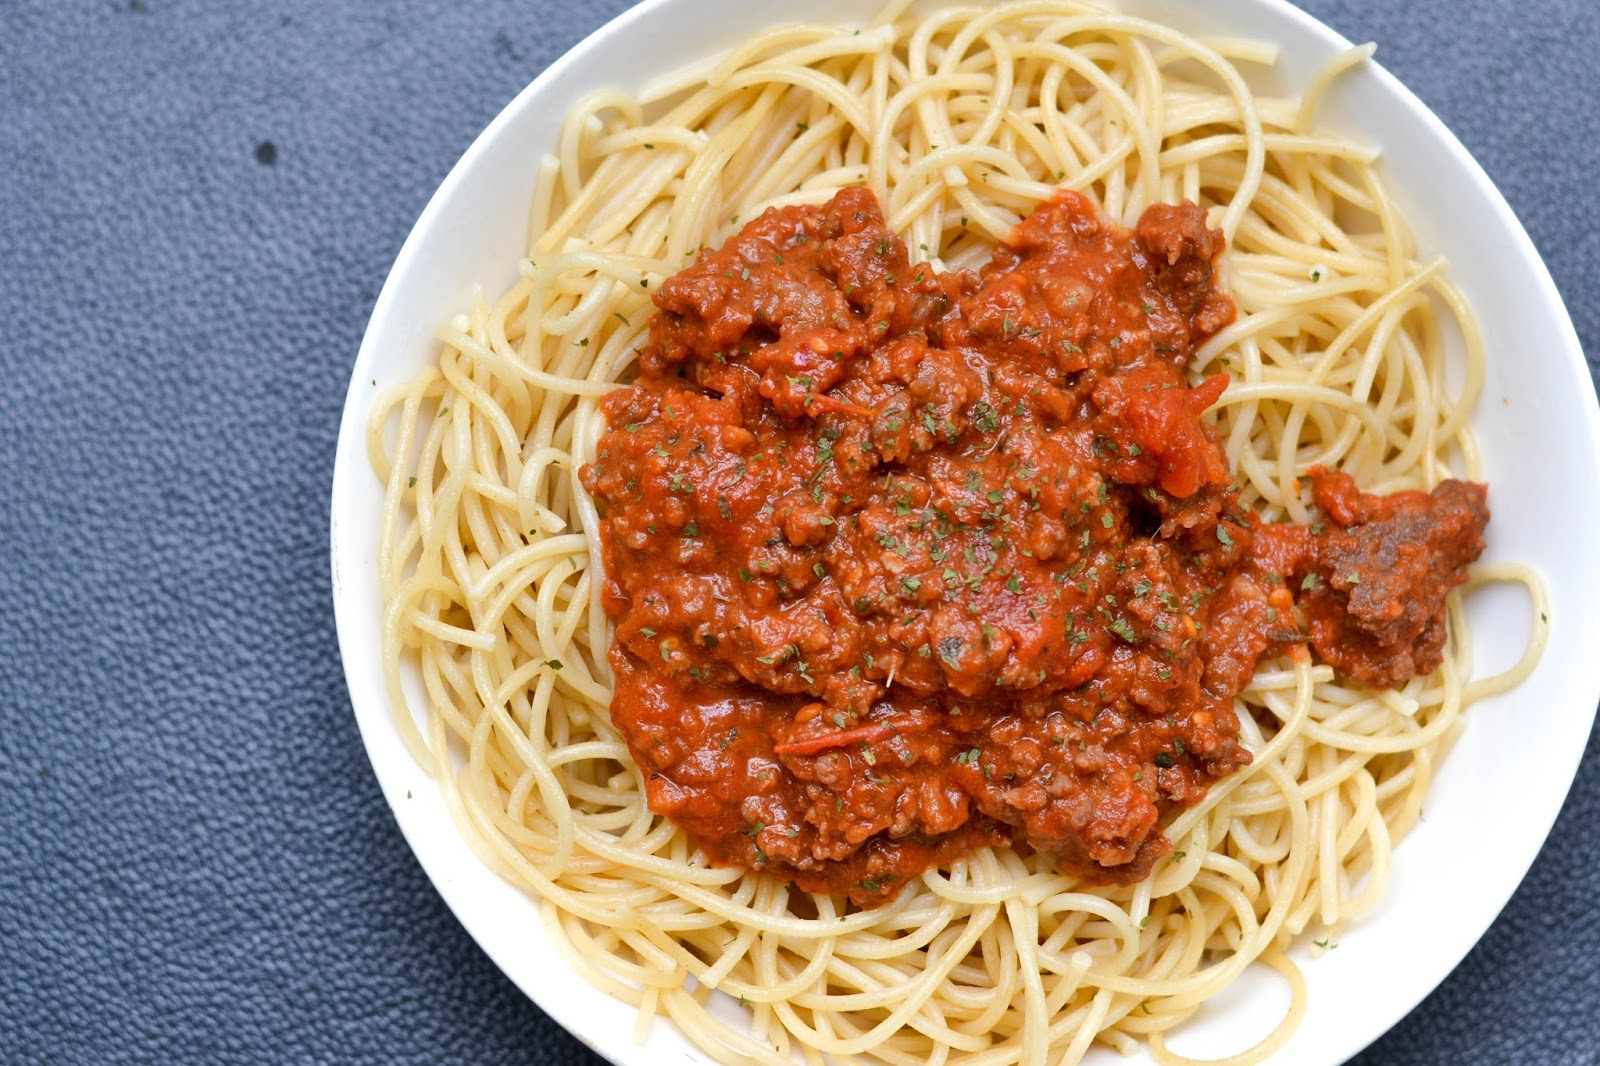 Spaghetti Bolognese with Parsley and Oregano